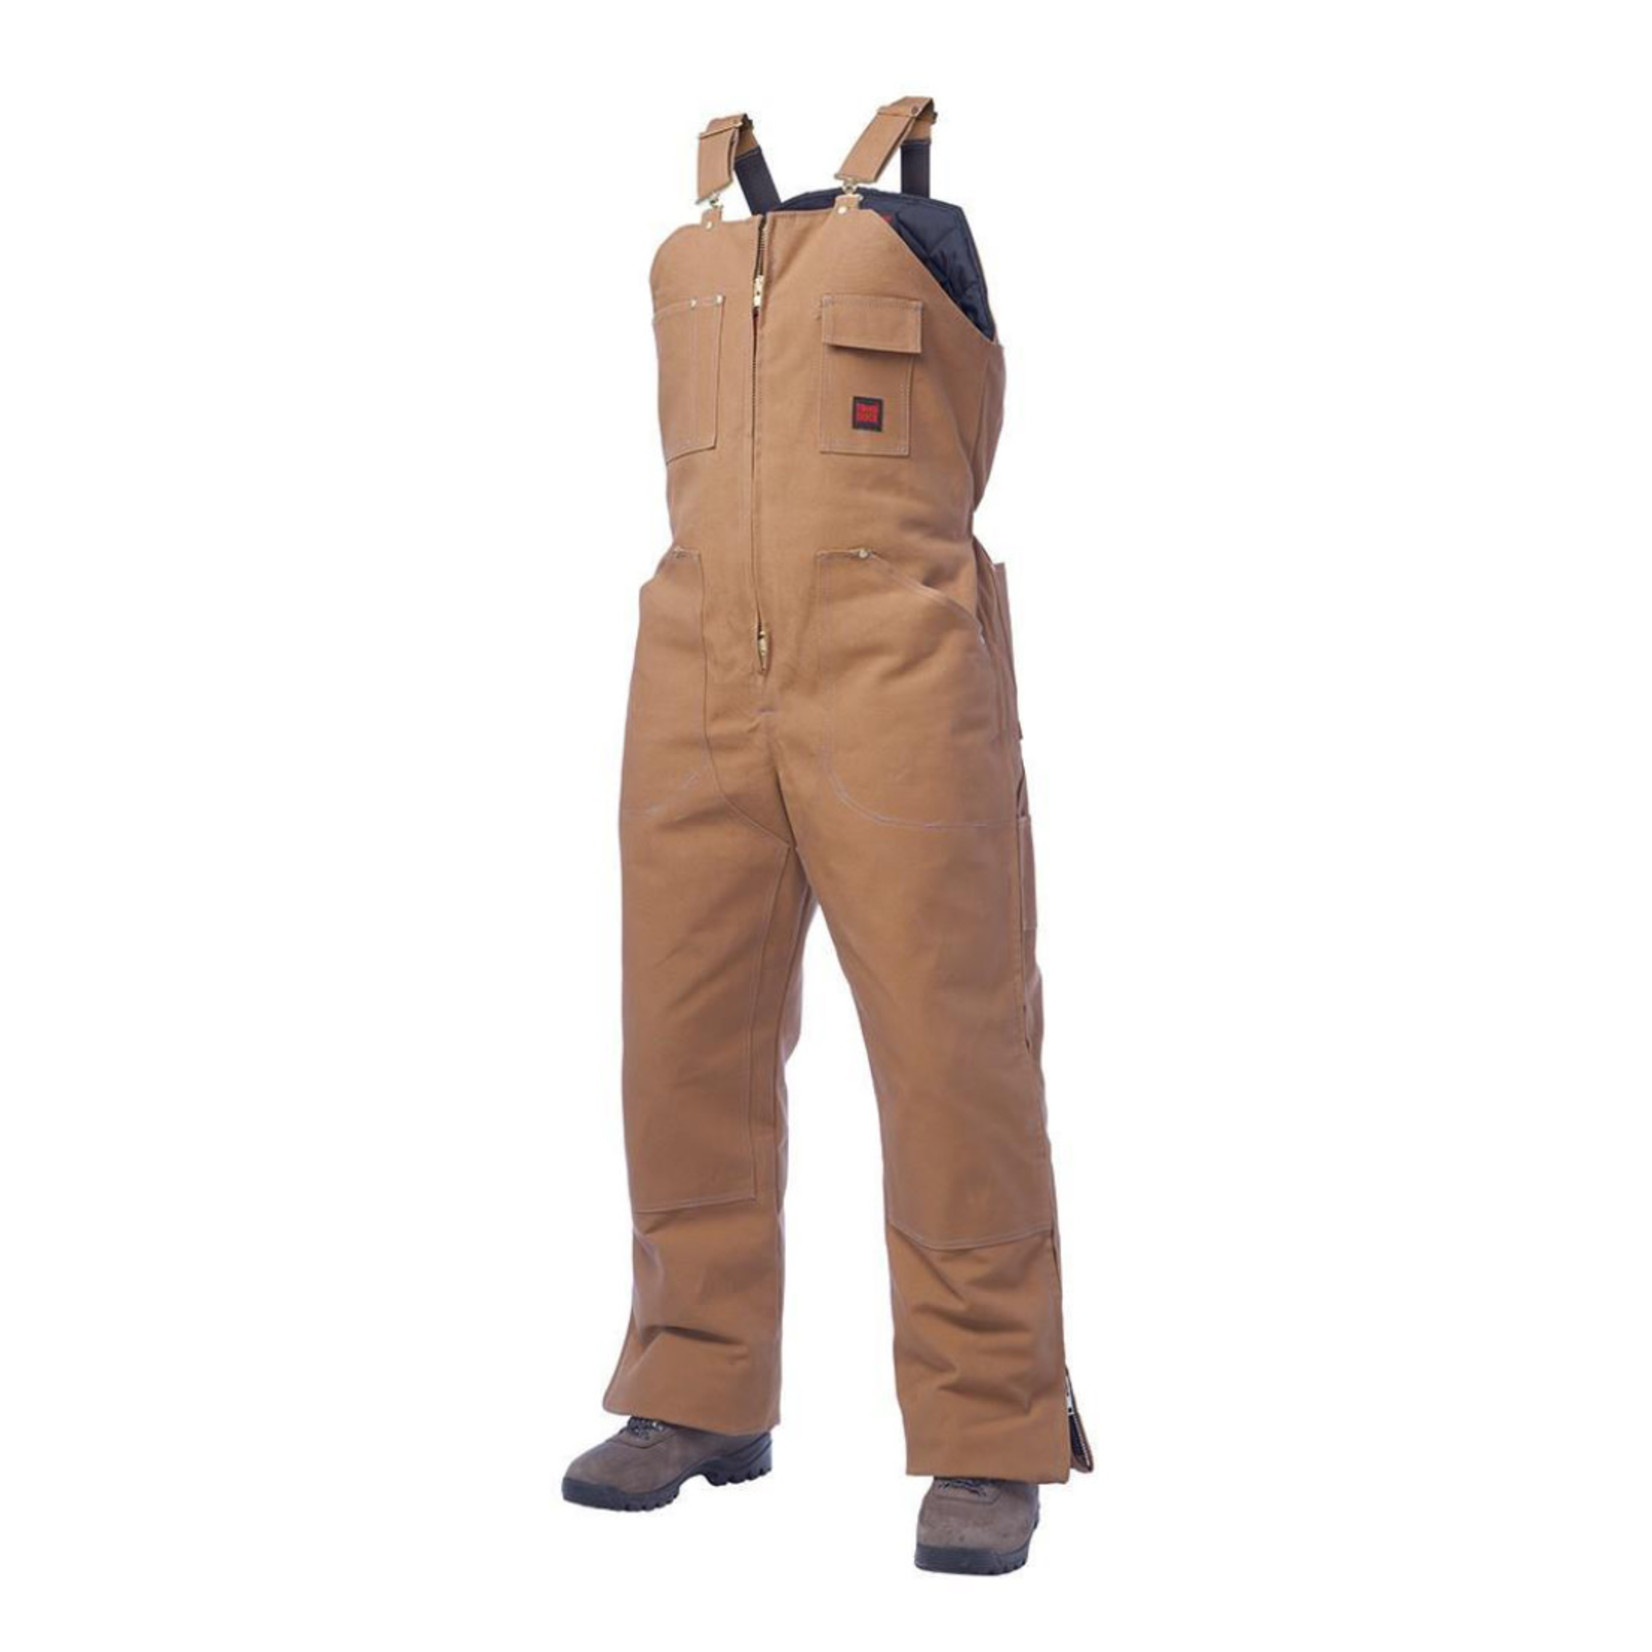 Tough Duck Tough Duck Deluxe Insulated Bib Overall 7537